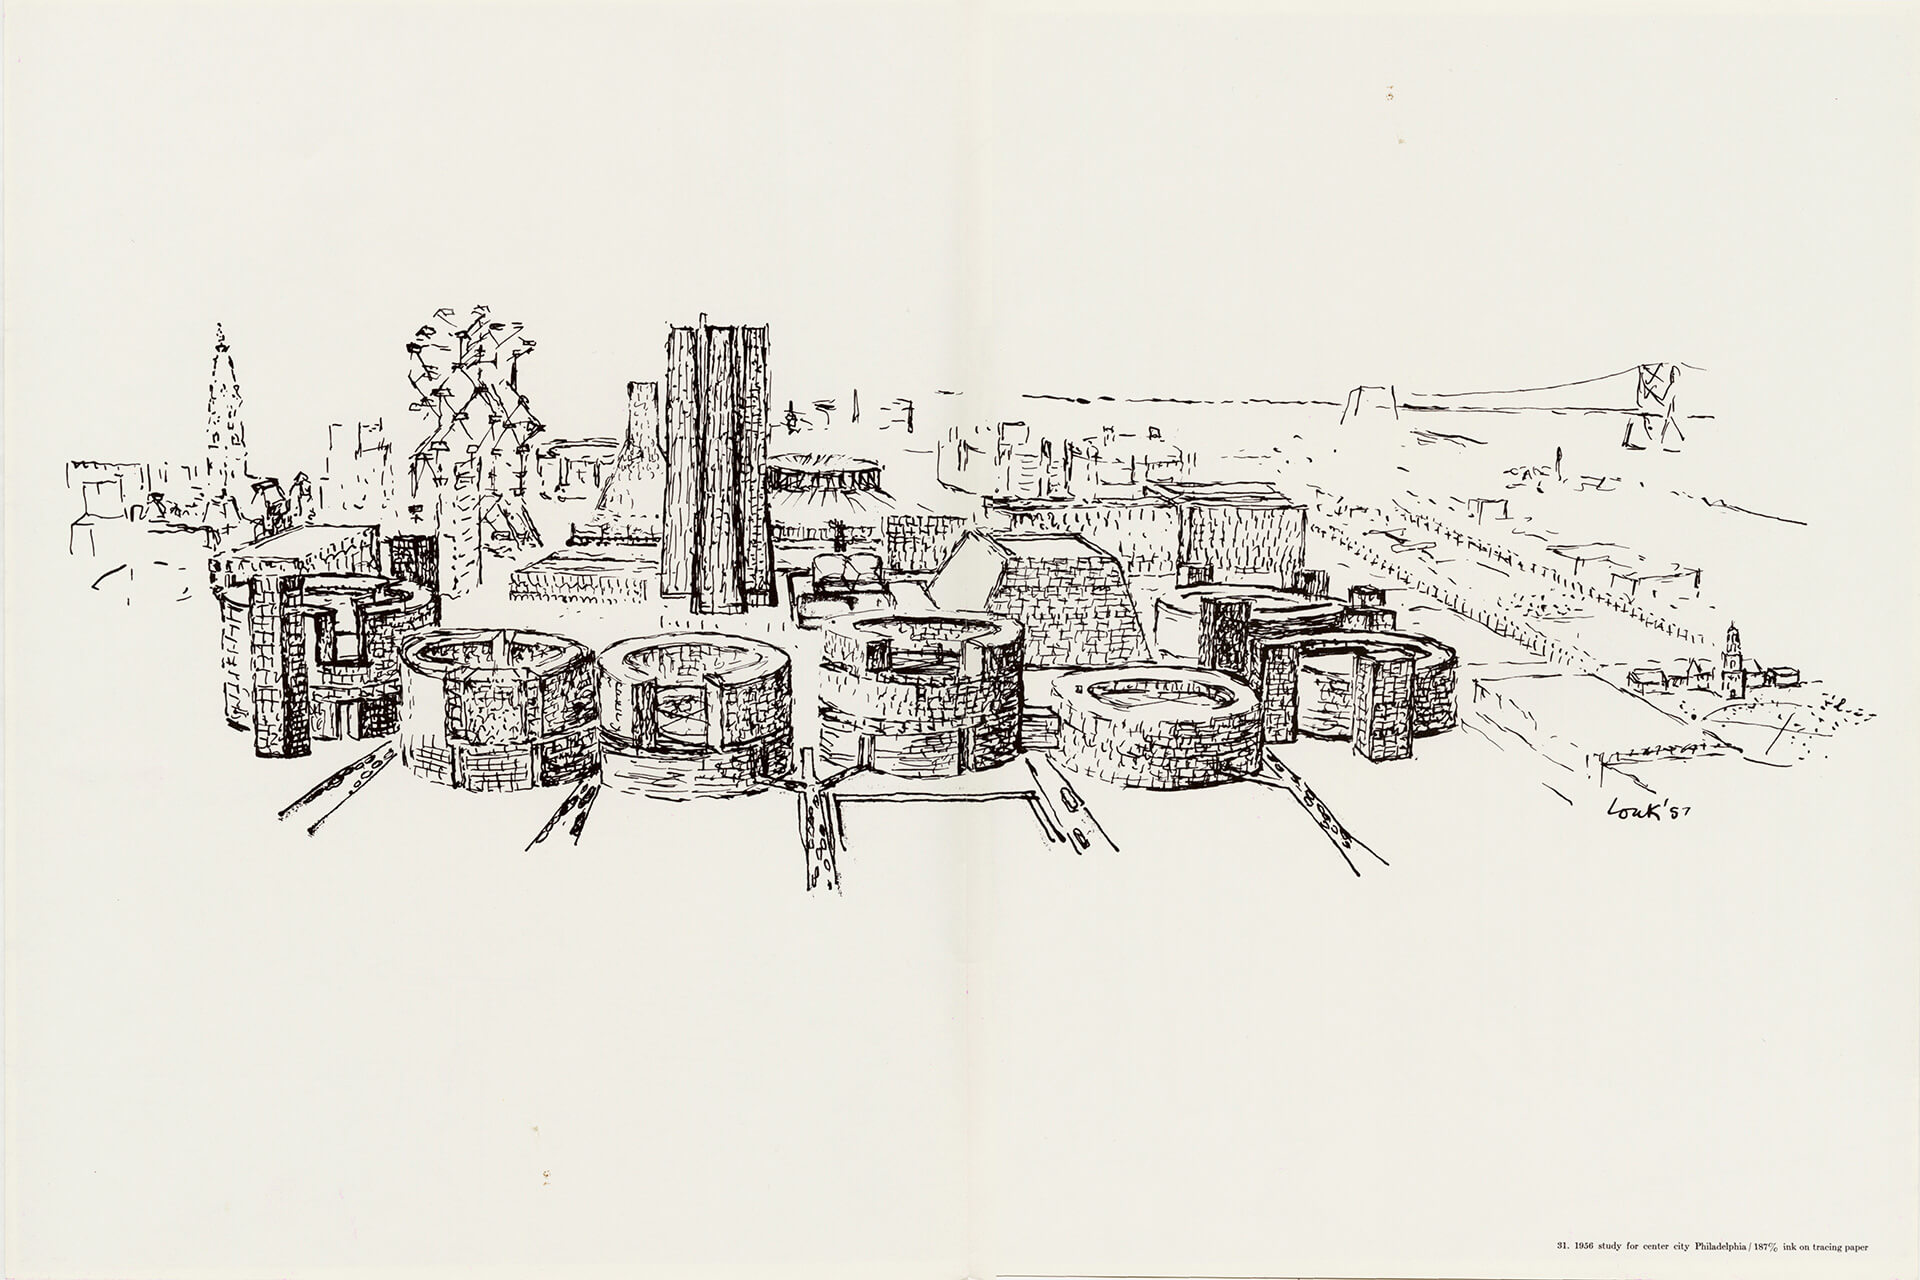 1956 study for center city Philadelphia, ink on tracing paper, detailed sketches | Louis Kahn Tribute, The Notebooks and Drawings of Louis I. Kahn | Louis Kahn, Designers and Books| STIRworld